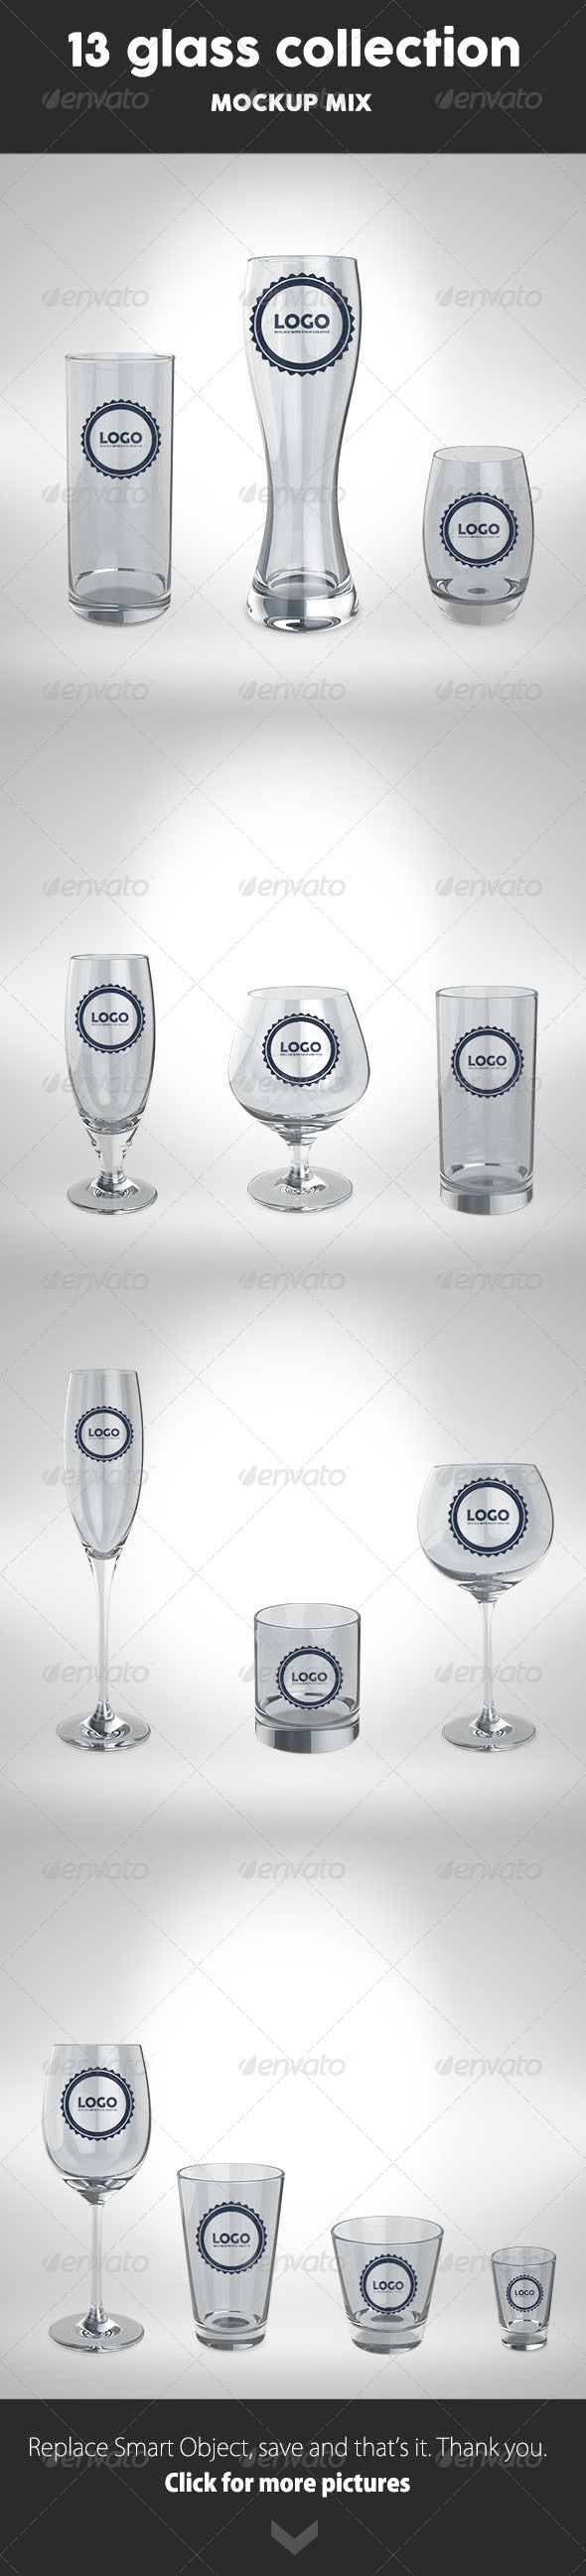 13 Glass Collection Mock Up